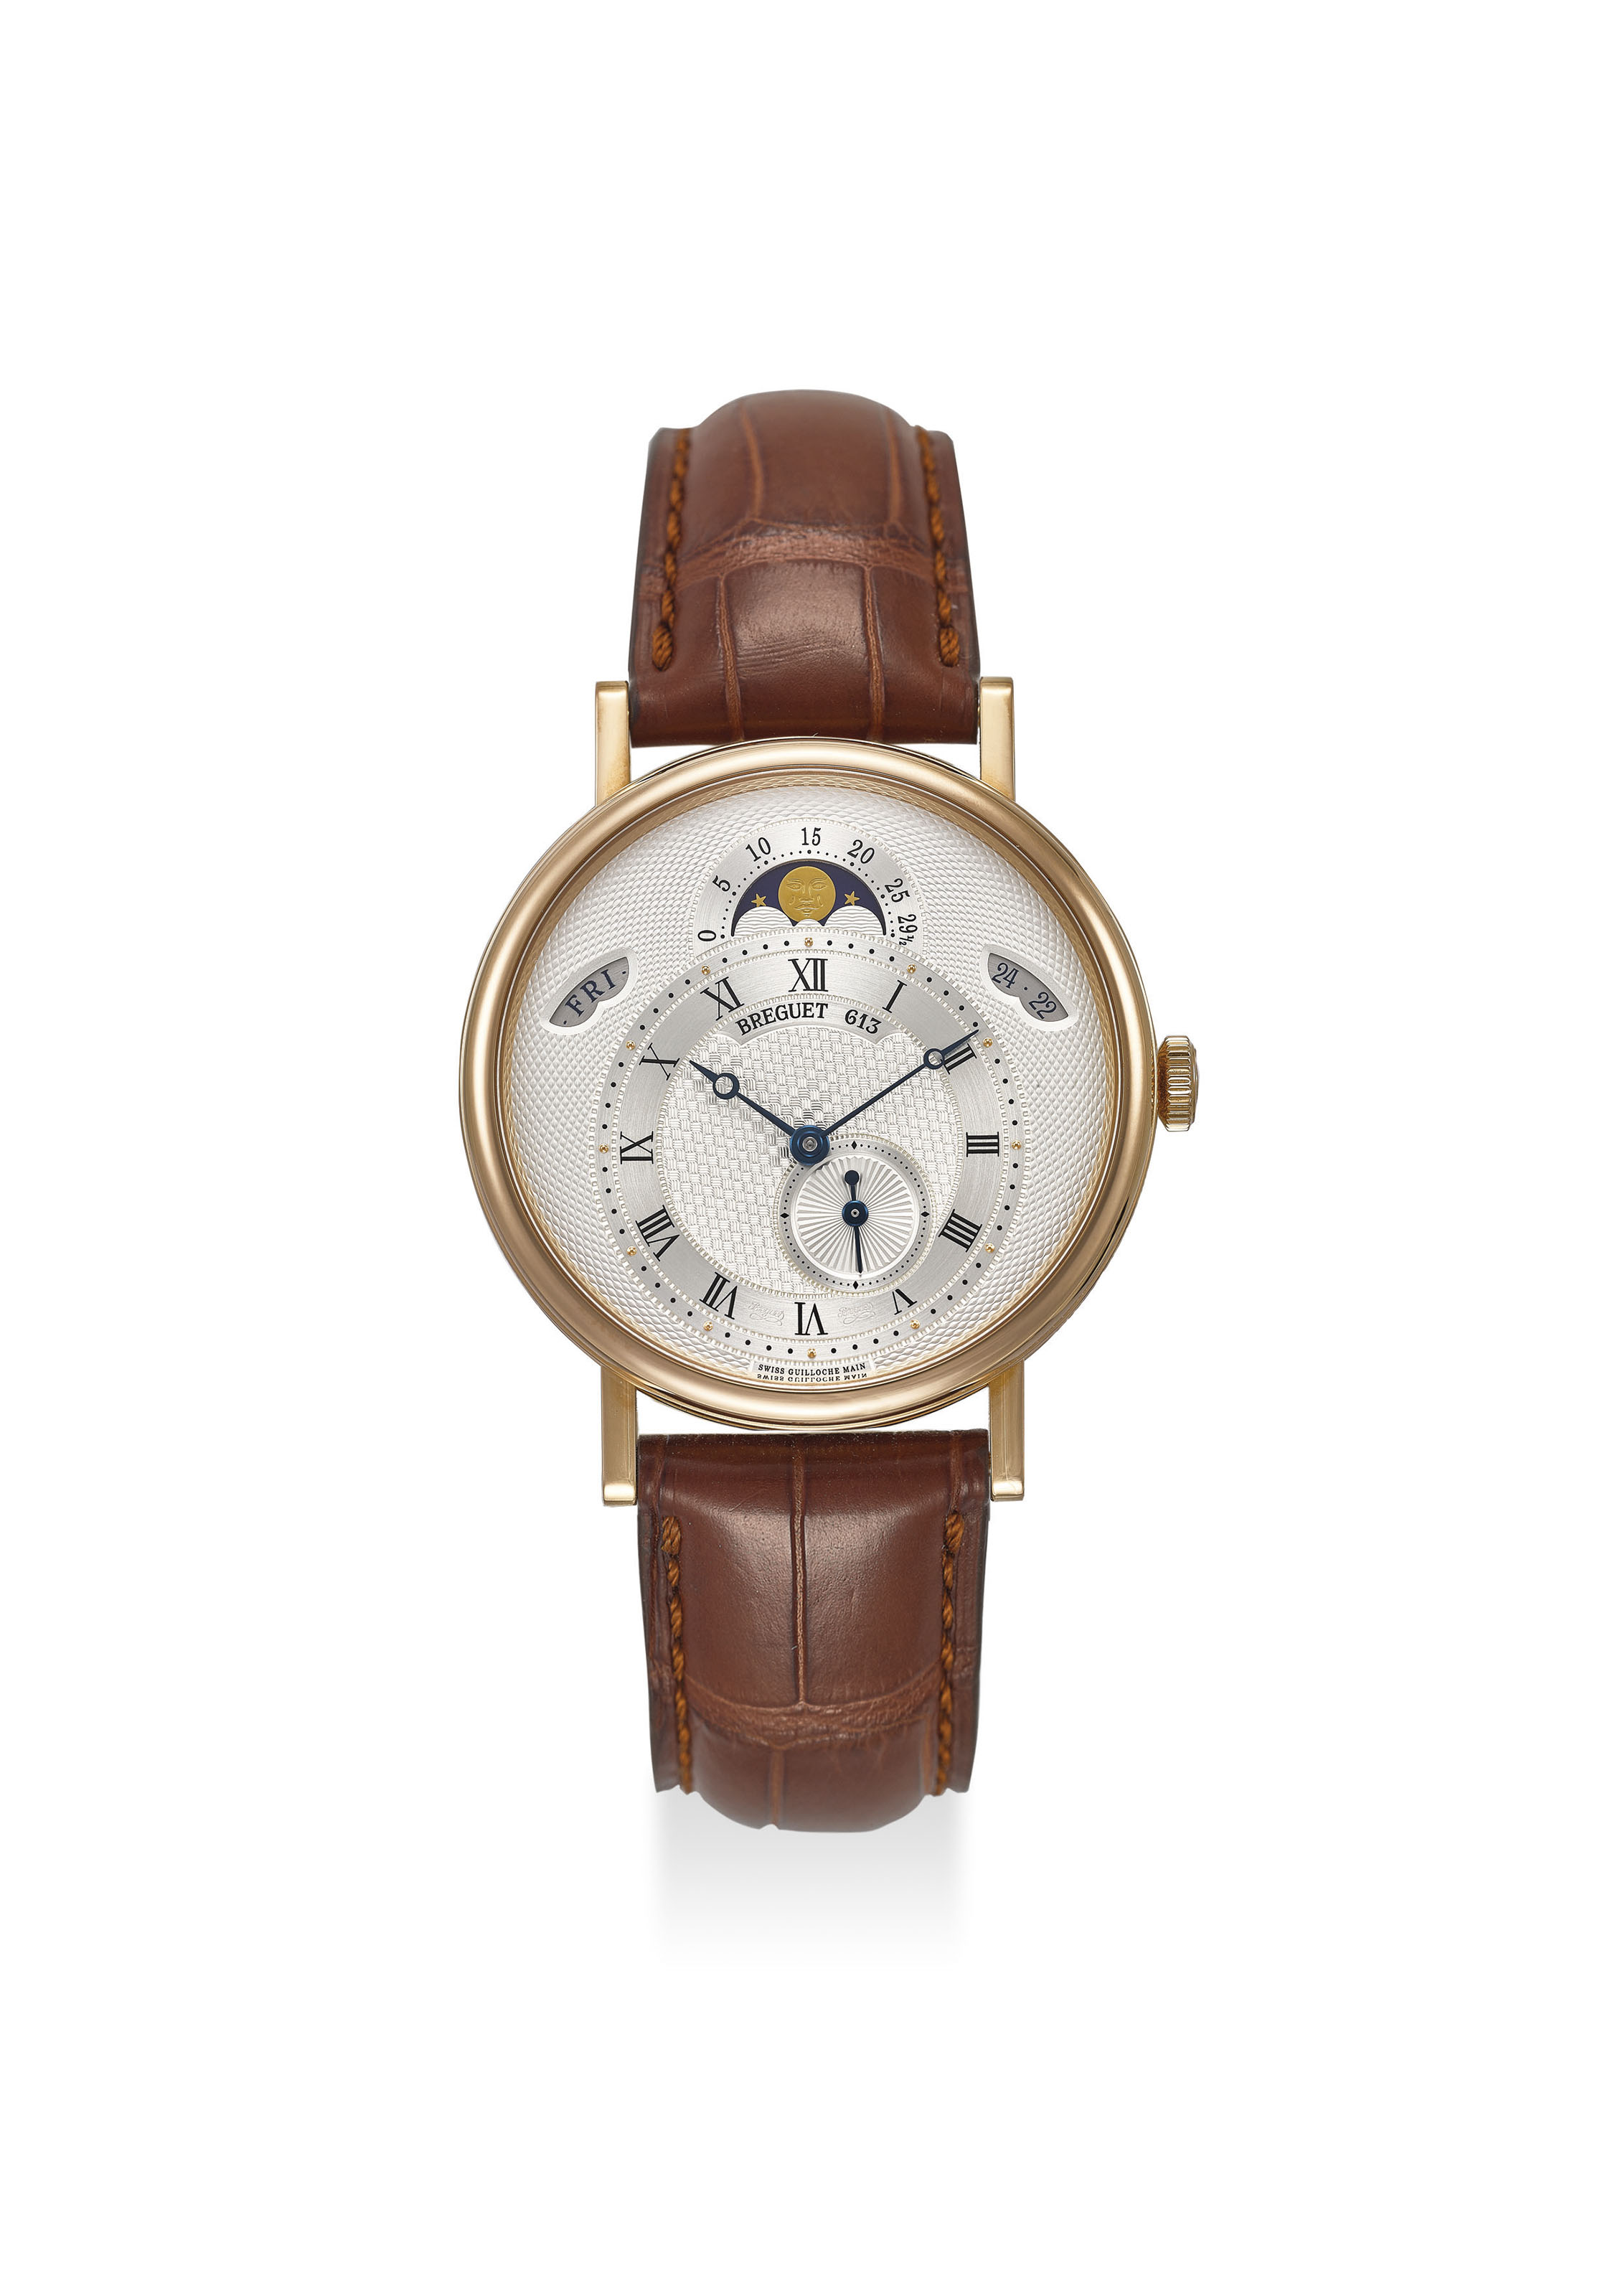 BREGUET AN EXTREMELY FINE 18K ROSE GOLD AUTOMATIC WRISTWATCH...